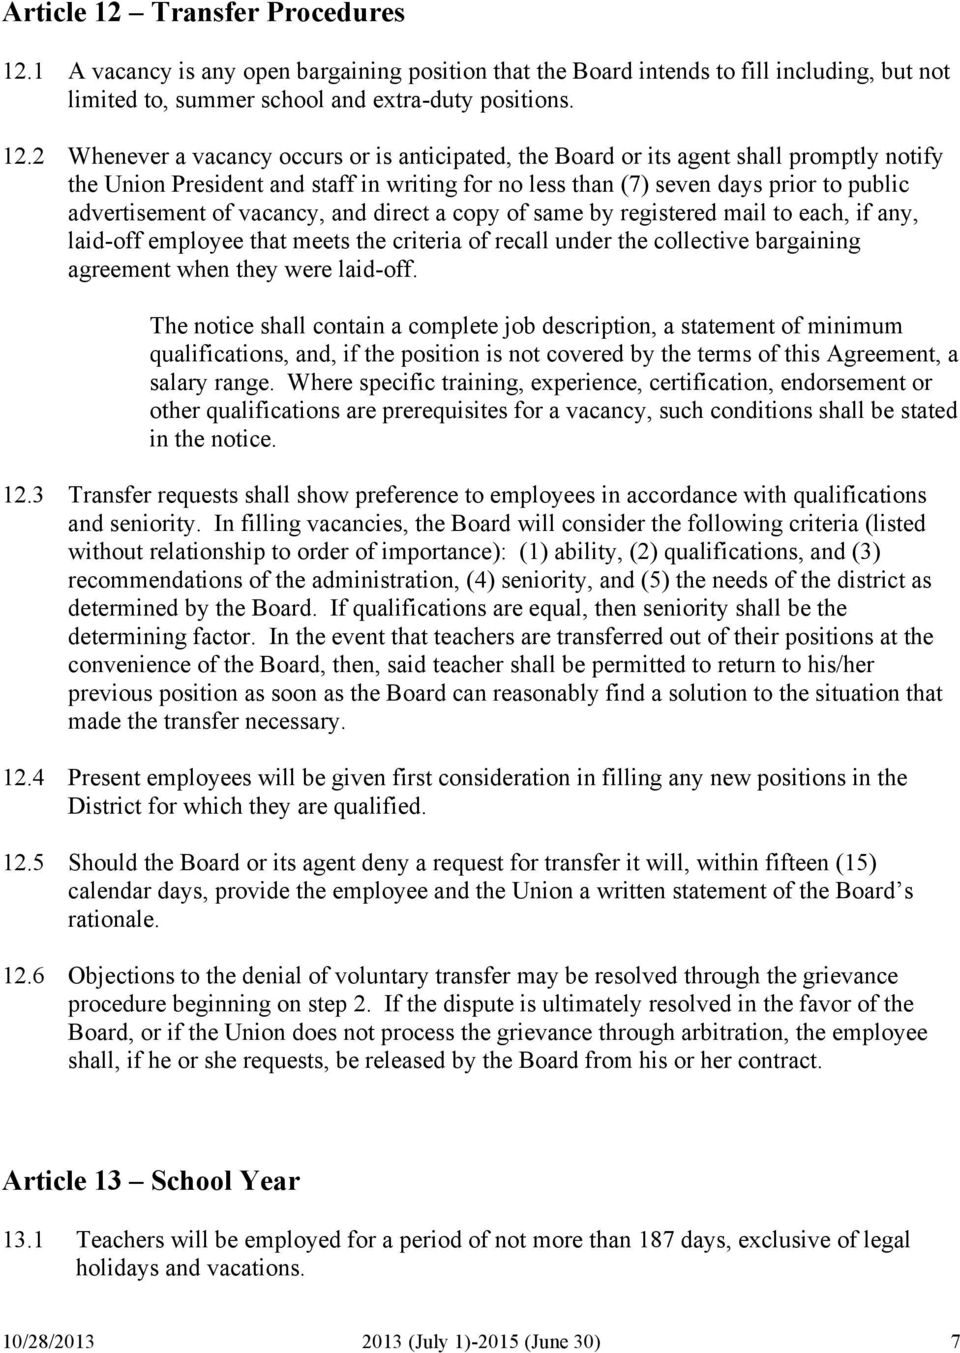 1 A vacancy is any open bargaining position that the Board intends to fill including, but not limited to, summer school and extra-duty positions. 12.